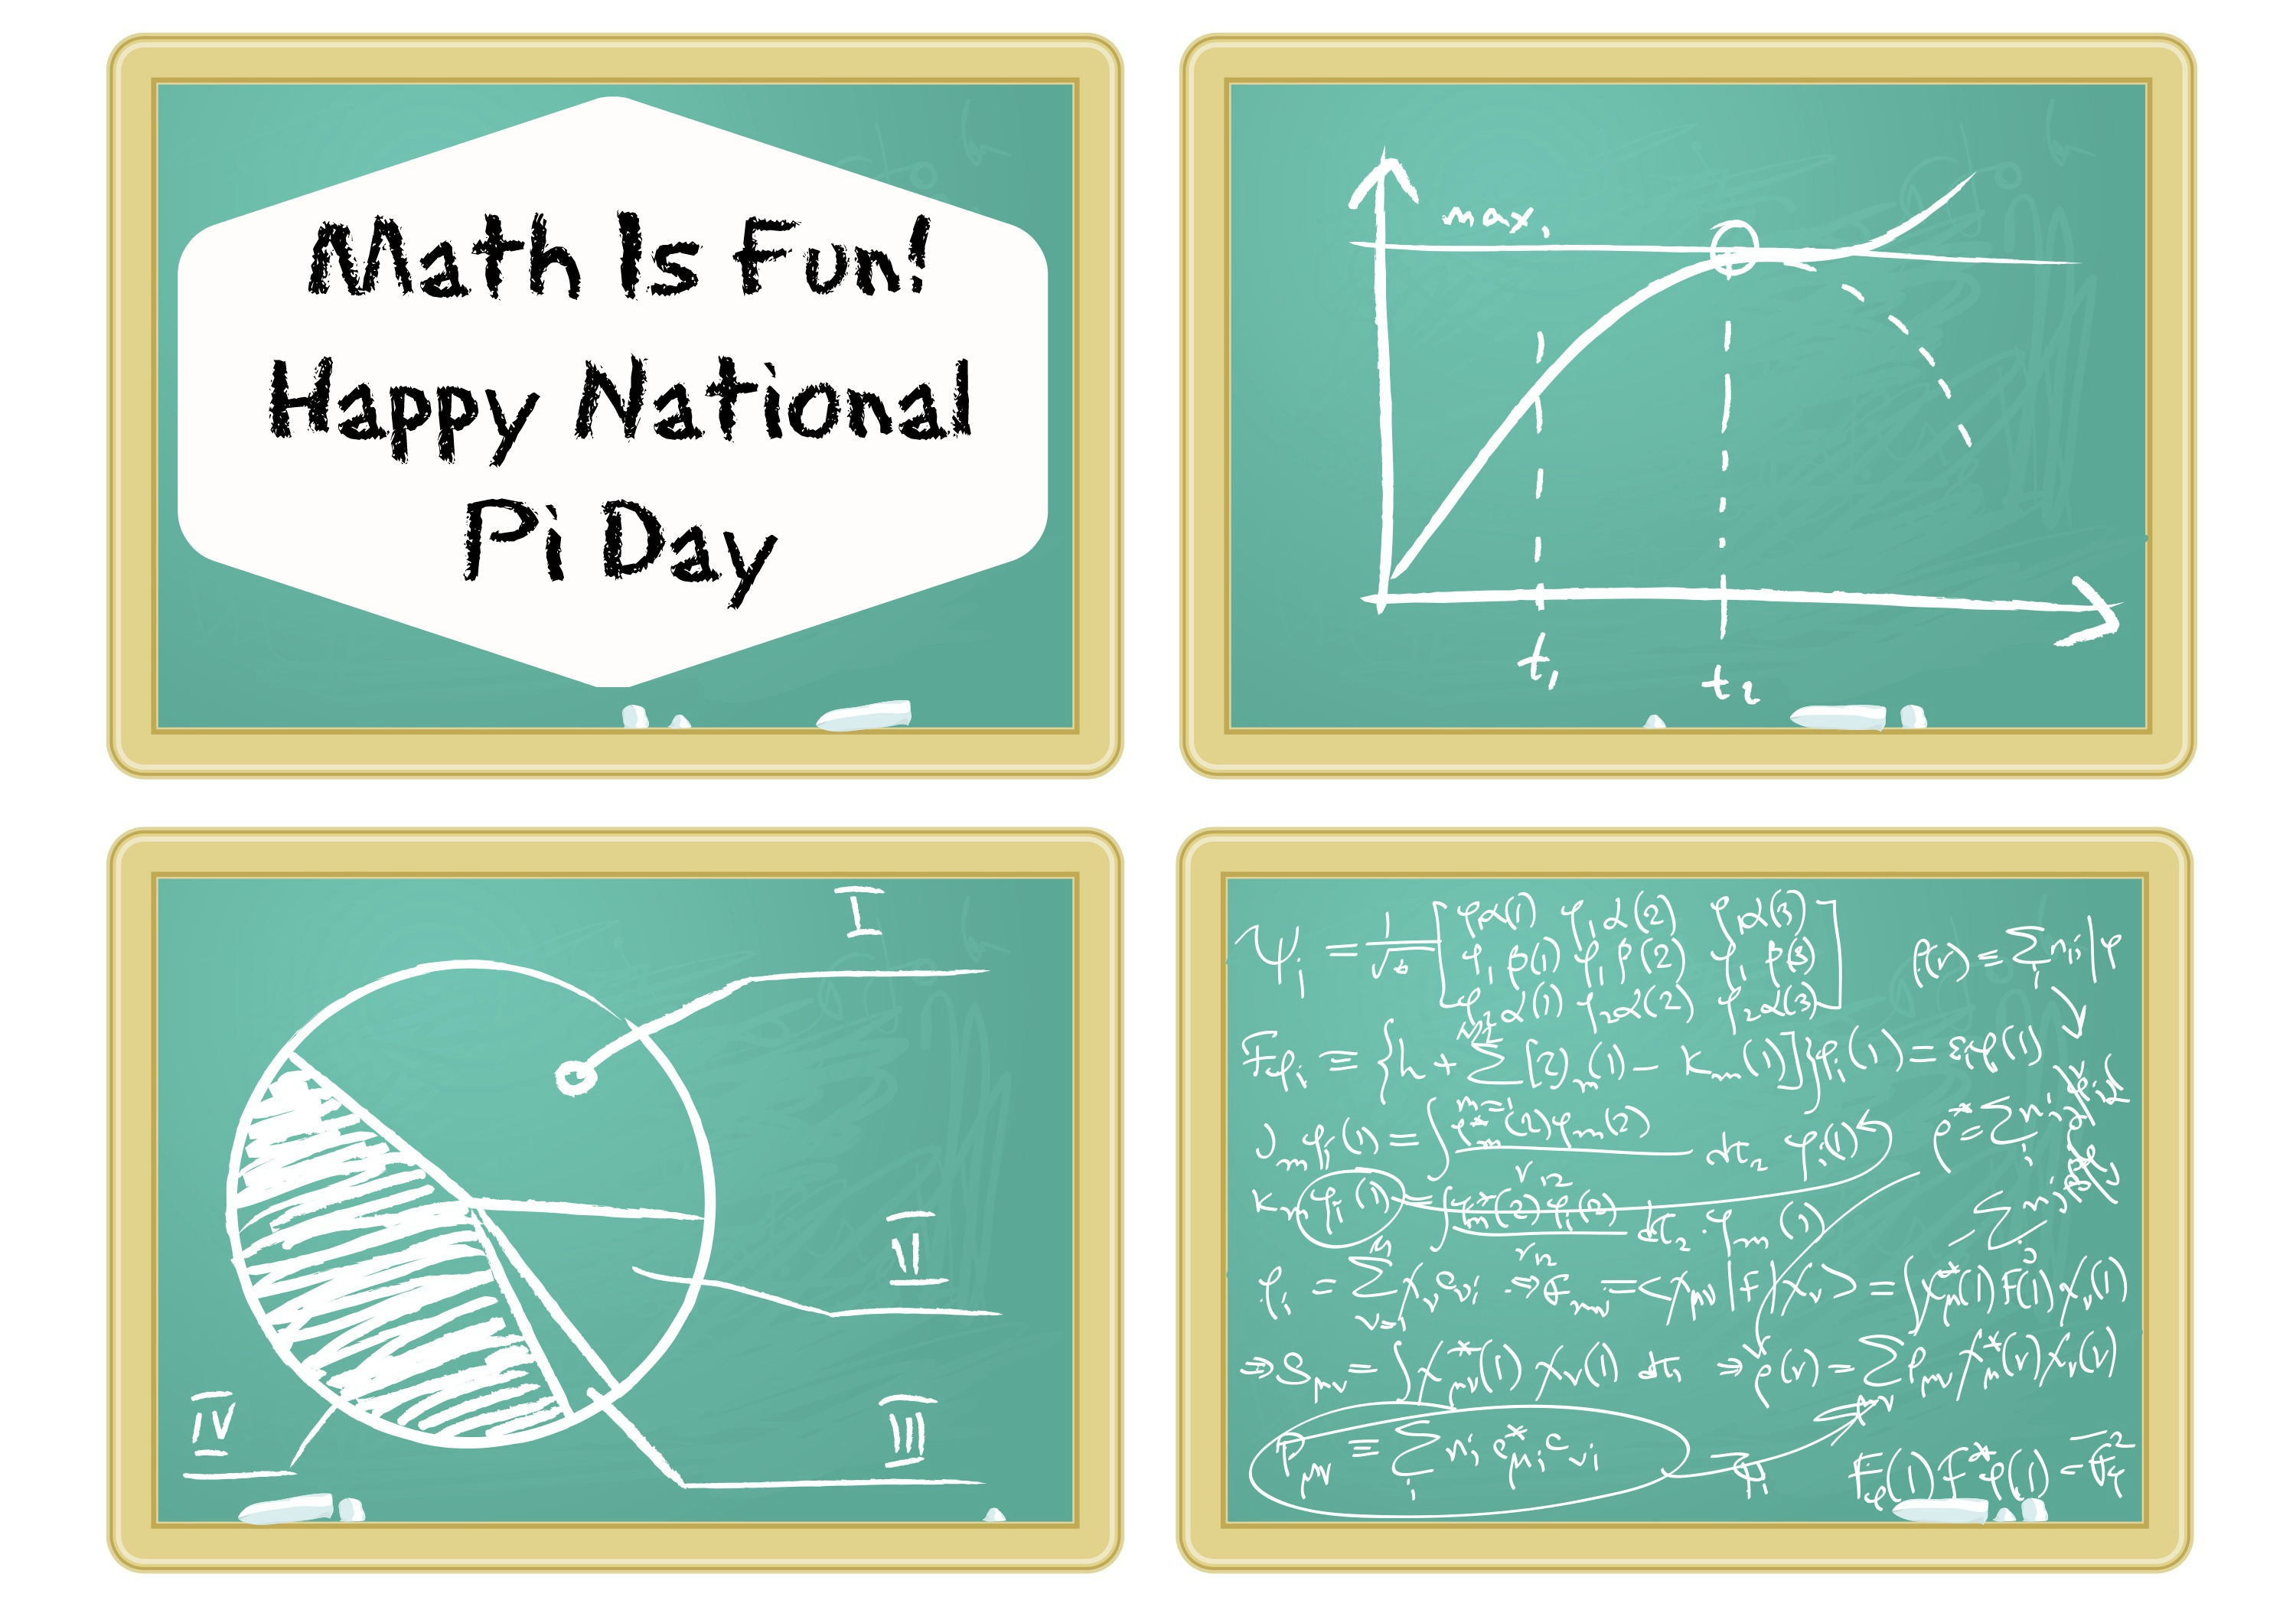 March 14 is National Pi Day! Ways to Have Fun With Math